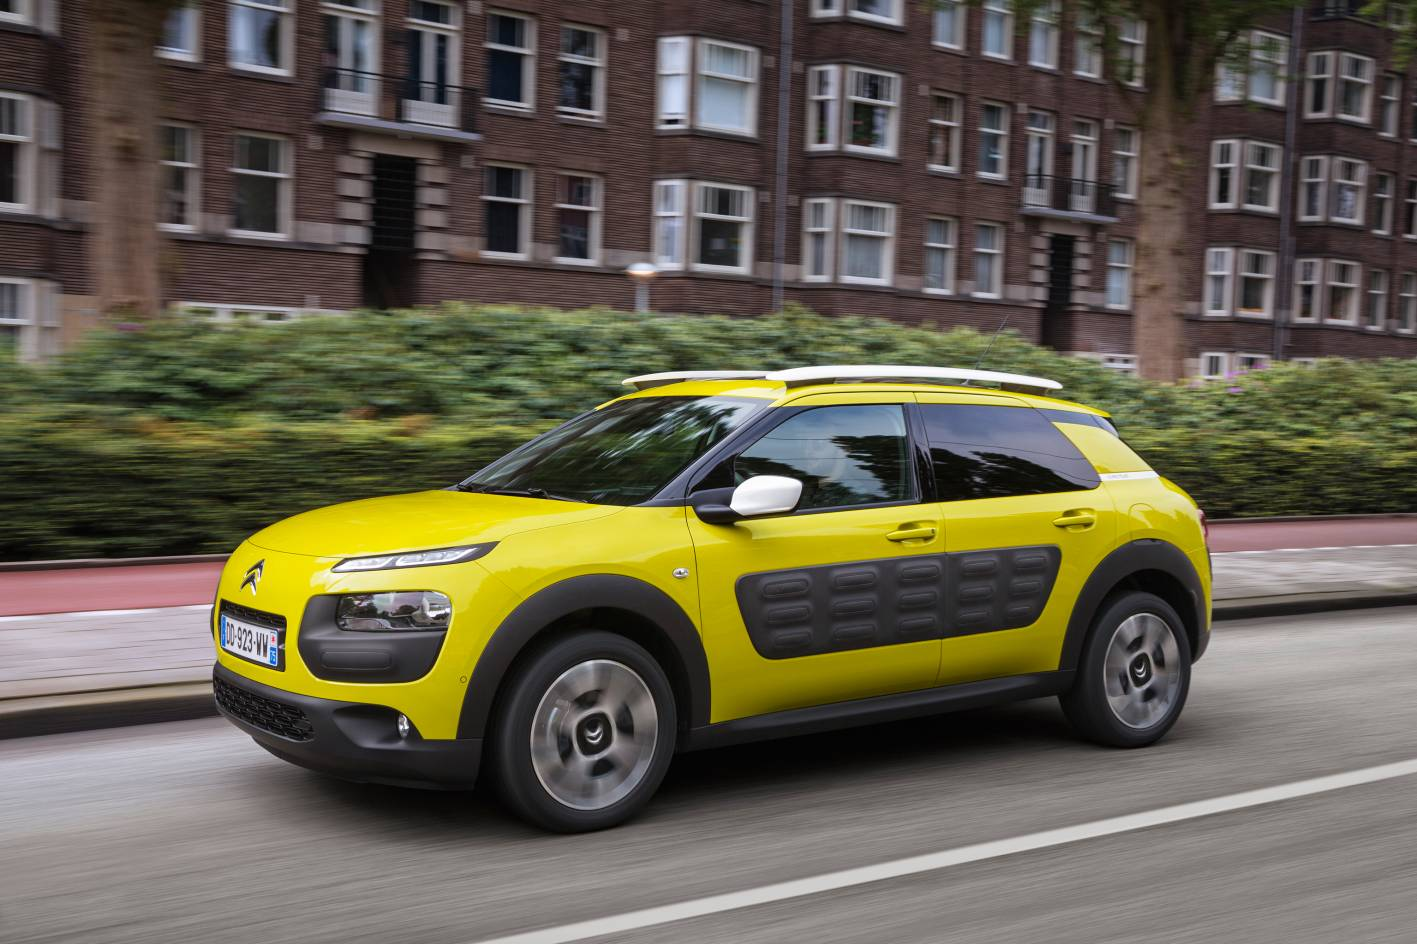 citroen to offer 23 194 combinations for c4 cactus pre orders. Black Bedroom Furniture Sets. Home Design Ideas